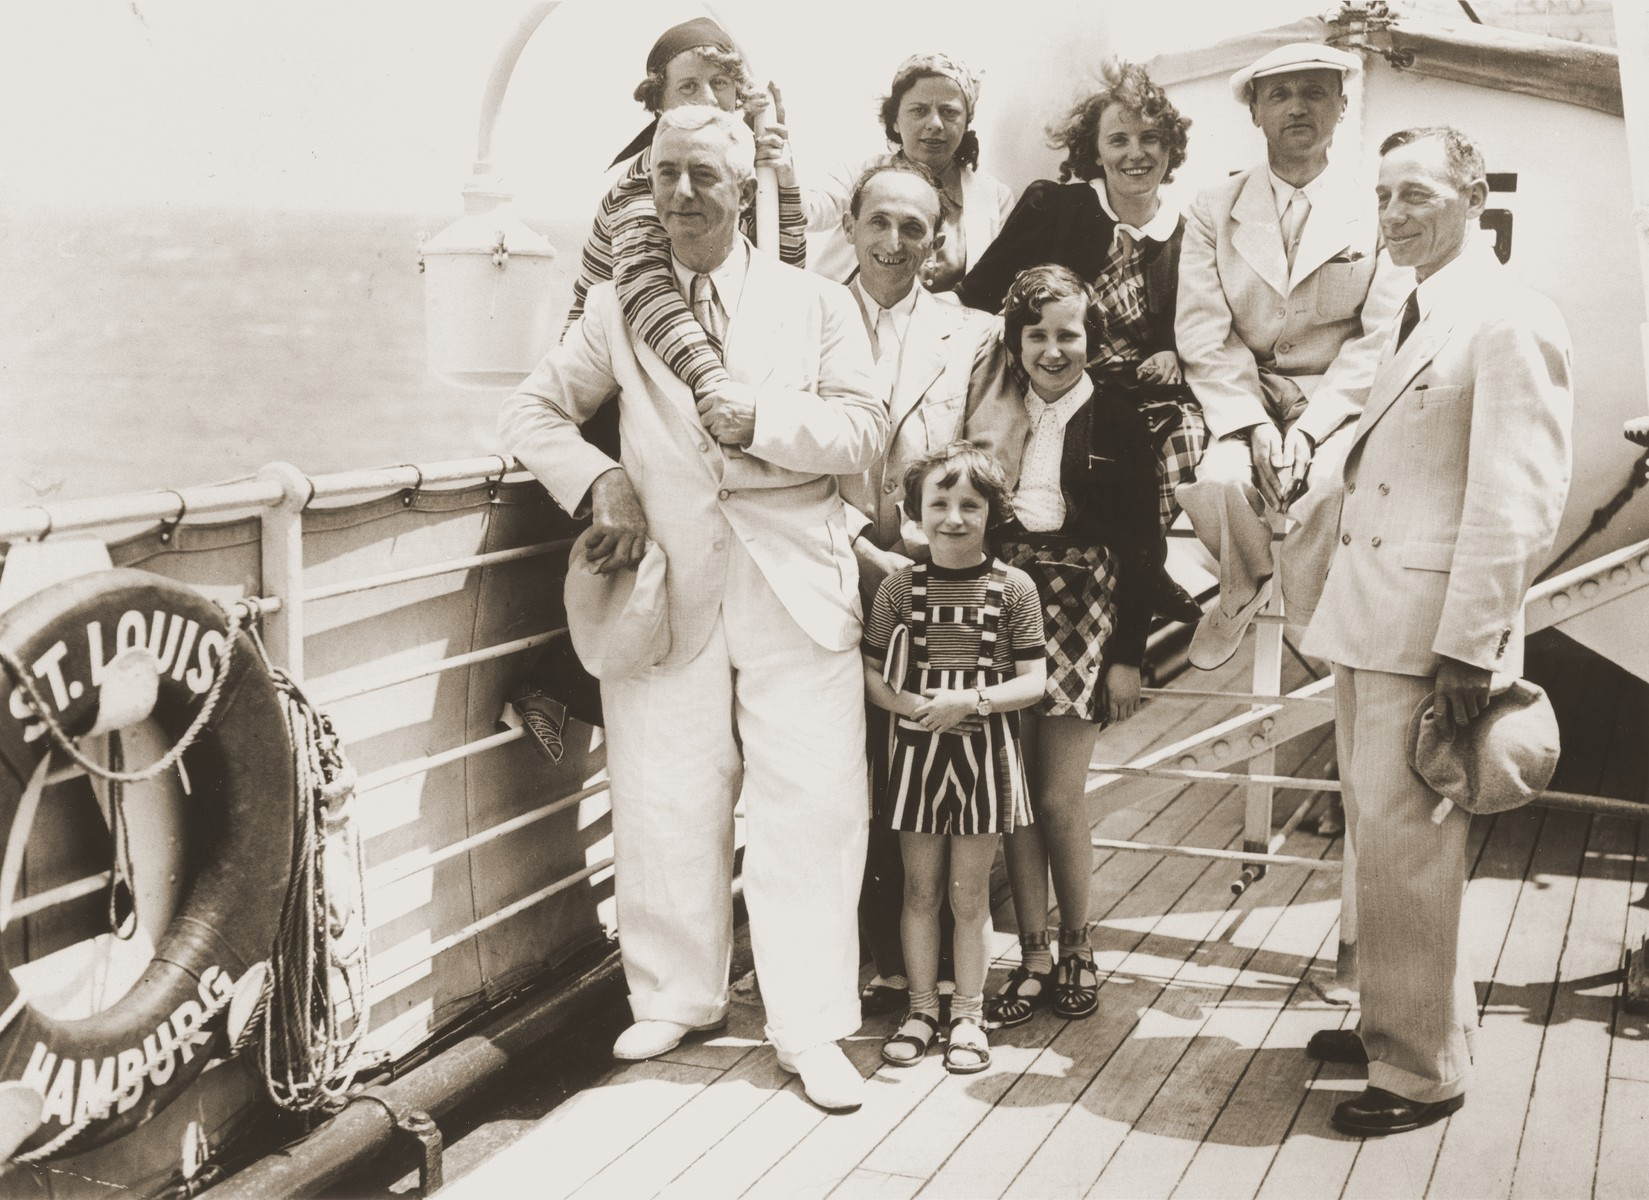 Members of the Dublon family pose on the deck of the MS St. Louis.  Willi Dublon stands second from the left.  Erna and Erich are sitting on the railing to his right.  Eva and Lore stand in front.